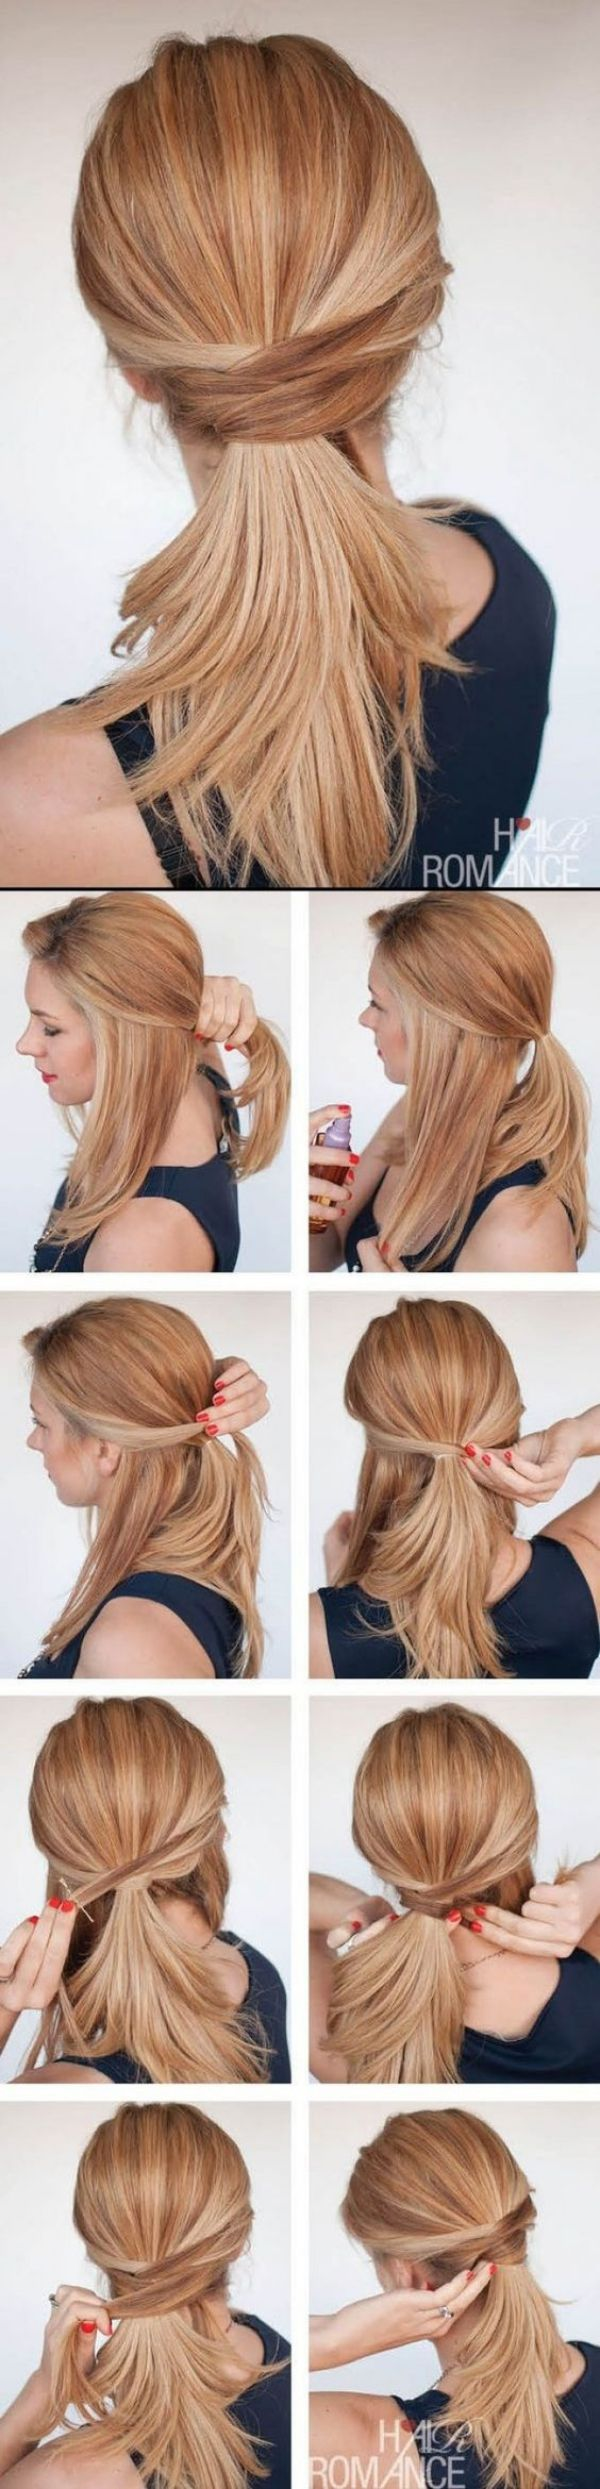 invisible part sew in weave hairstyles : ideas about Interview Hairstyles on Pinterest Office updo, Interview ...